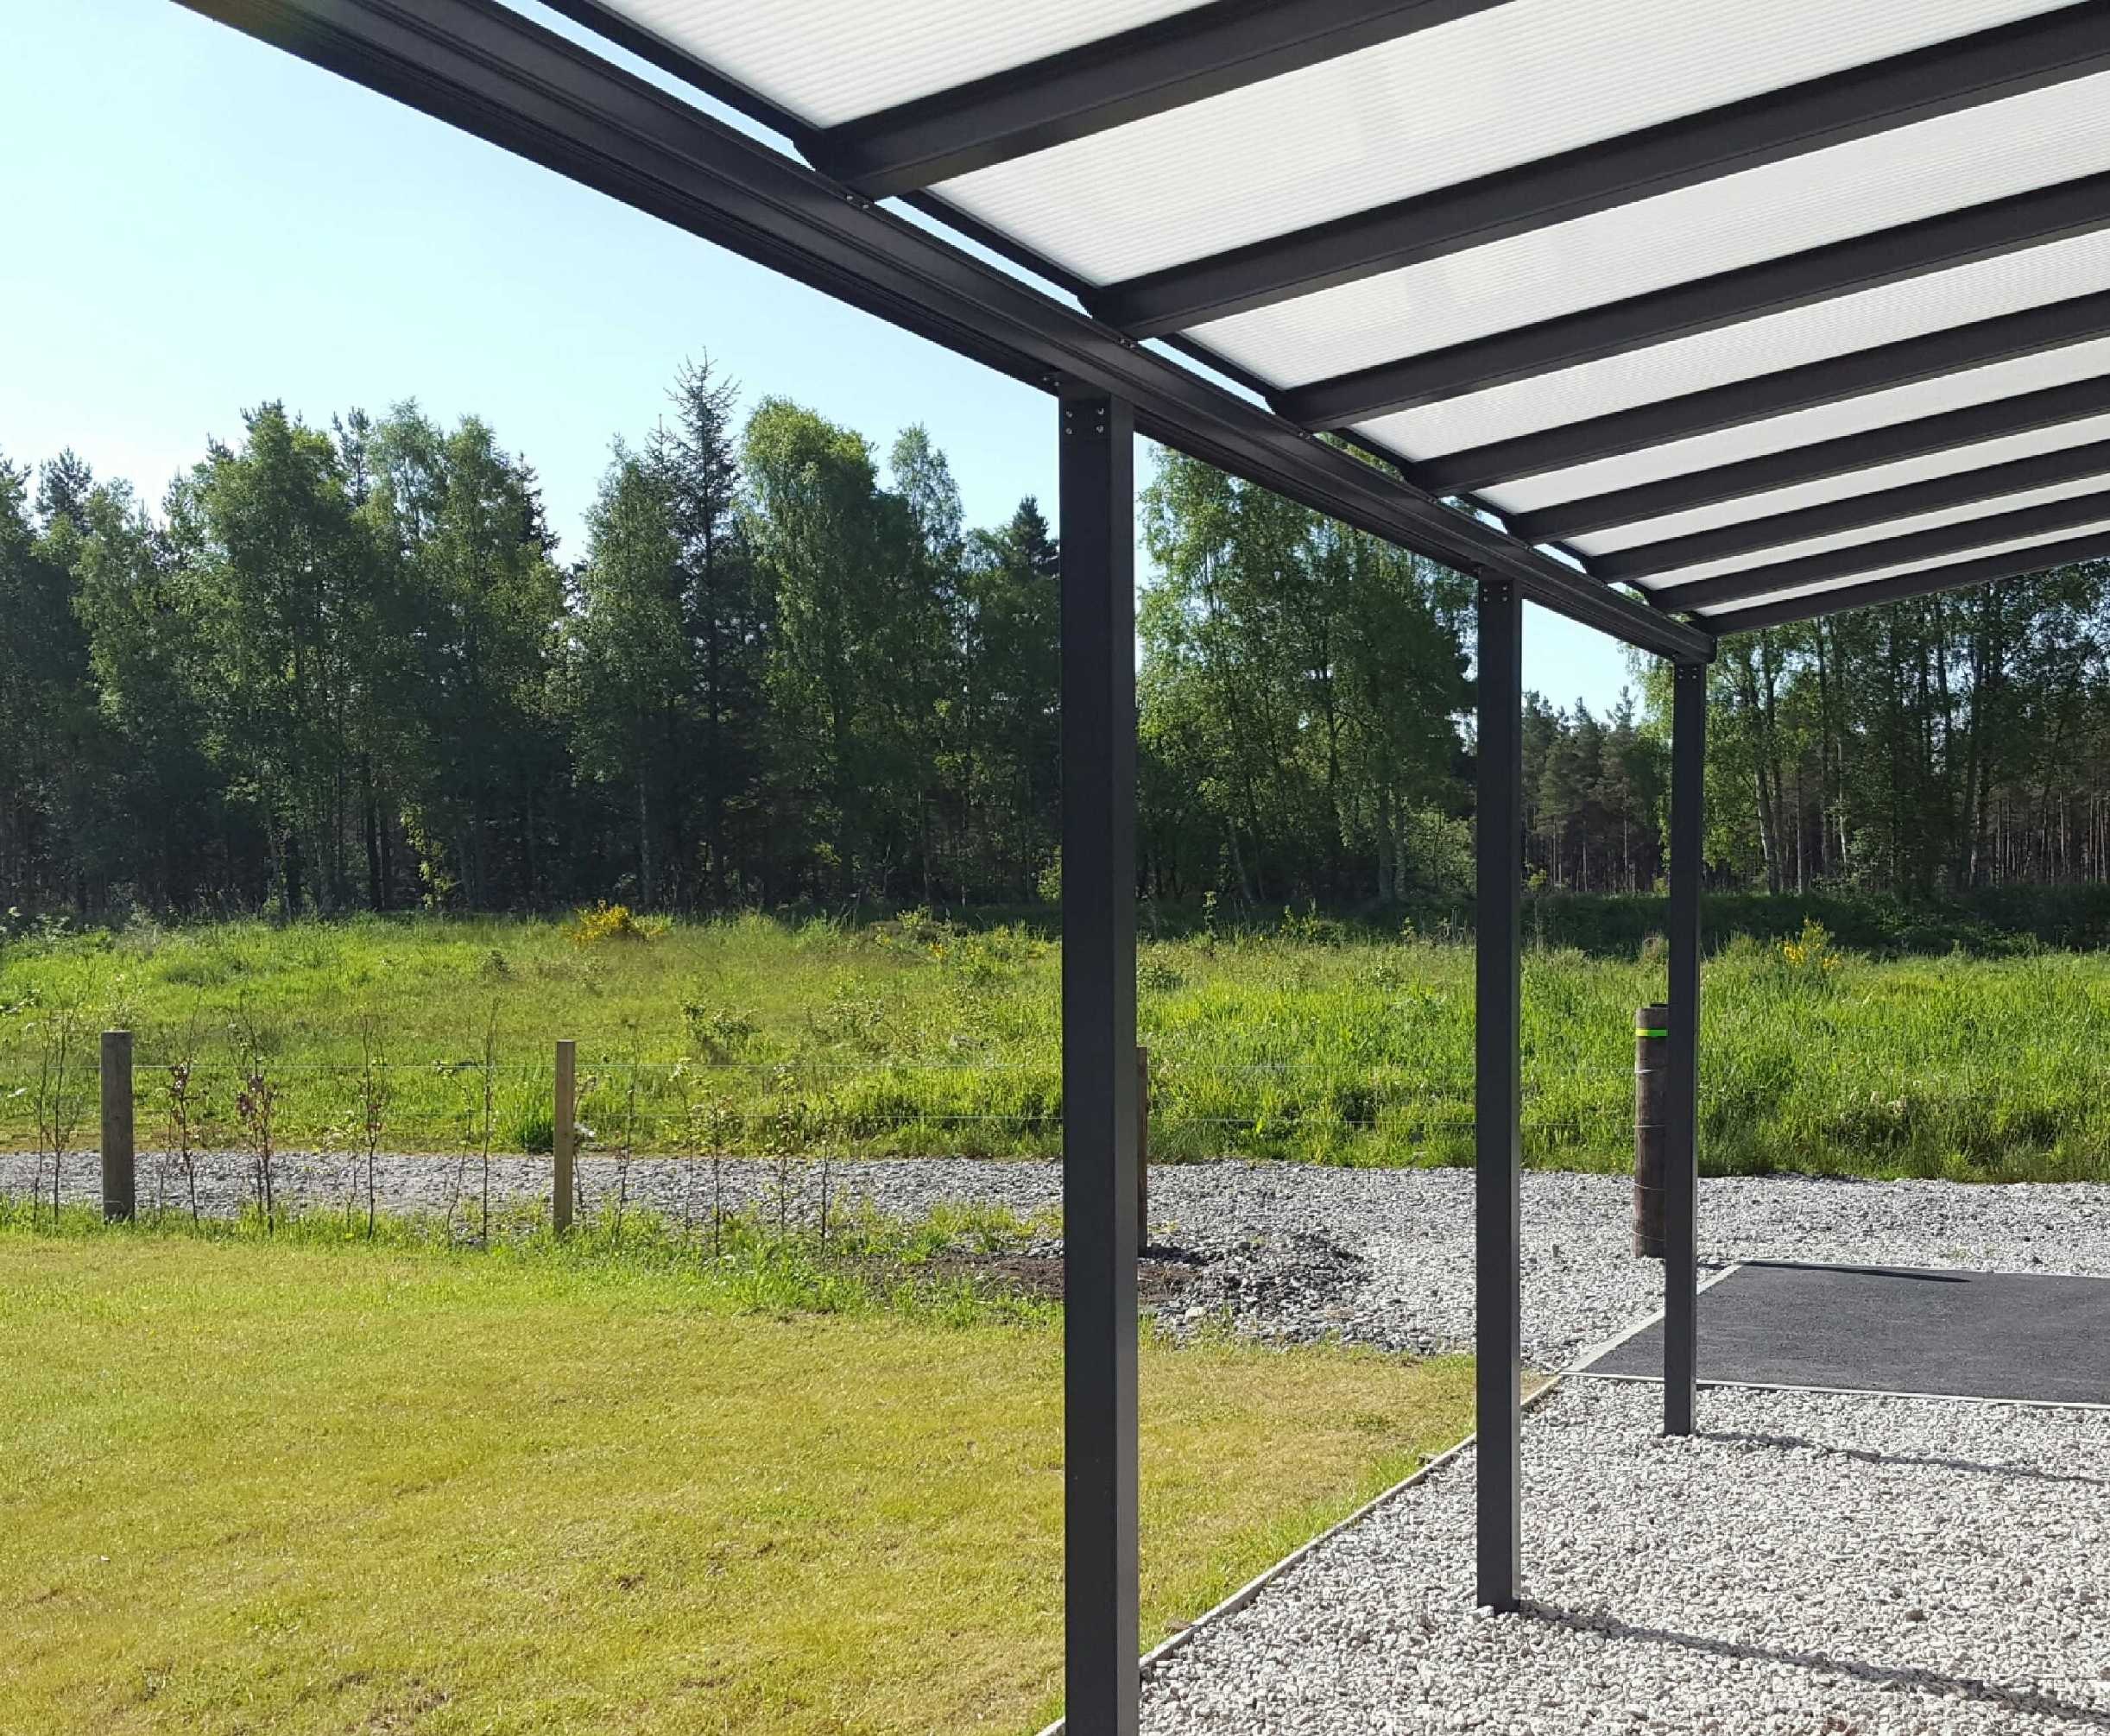 Omega Smart Lean-To Canopy, Anthracite Grey, 16mm Polycarbonate Glazing - 3.1m (W) x 2.5m (P), (2) Supporting Posts